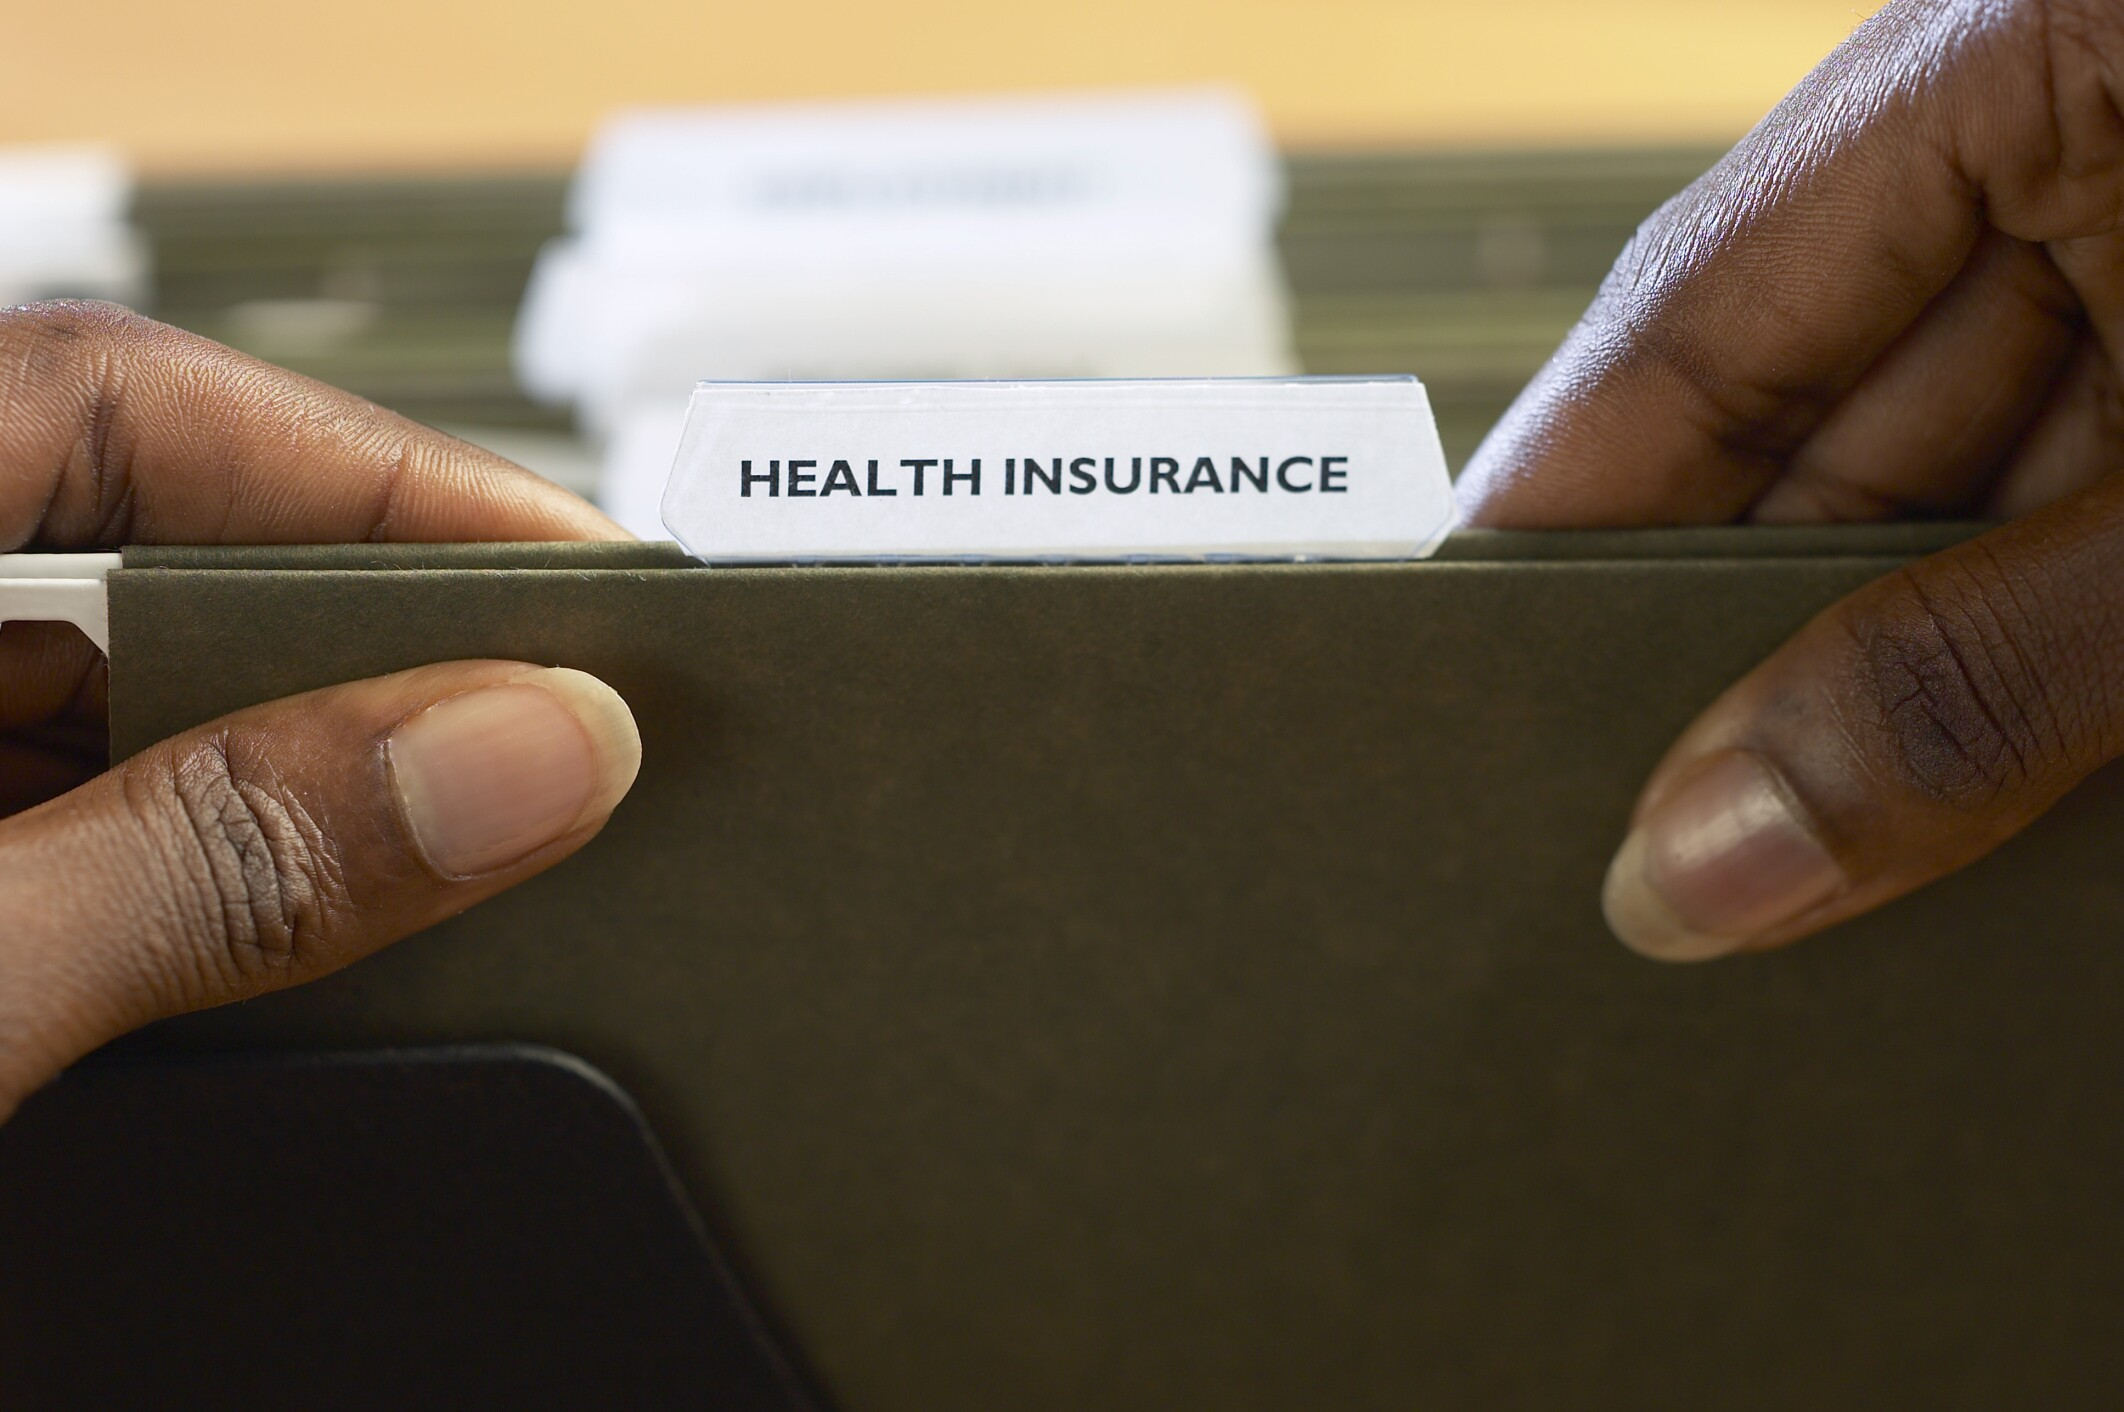 6 ways a health care plan can lose its 'grandfathered' status under Obamacare